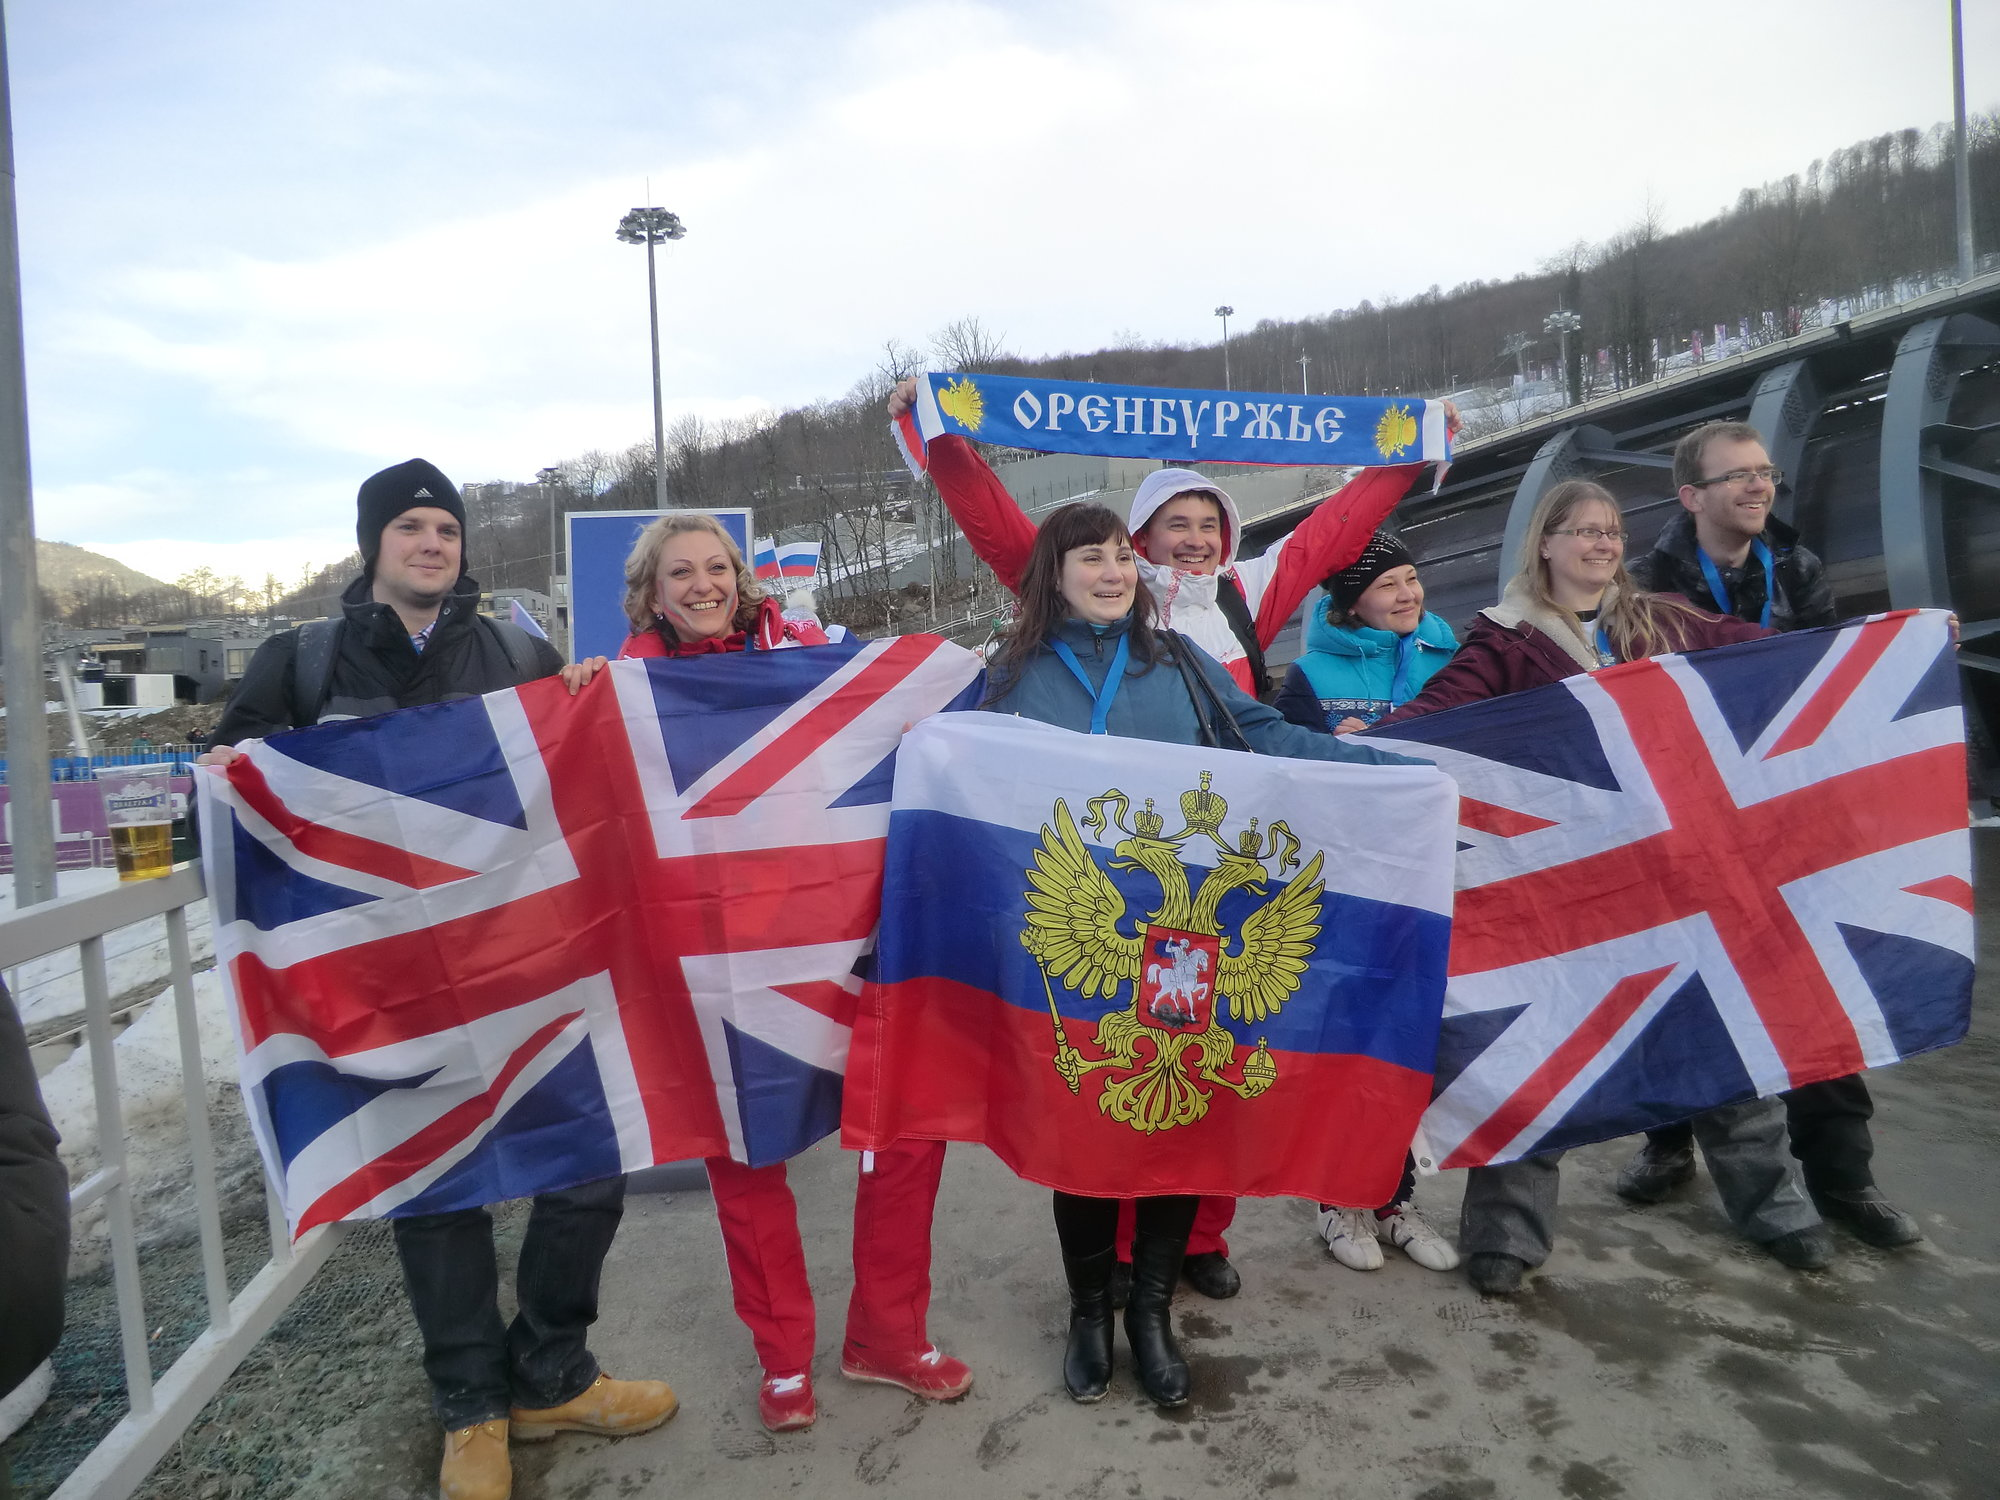 Supporters, mainly British ones, in excited mood as the skeleton gets underway ©Philip Barker